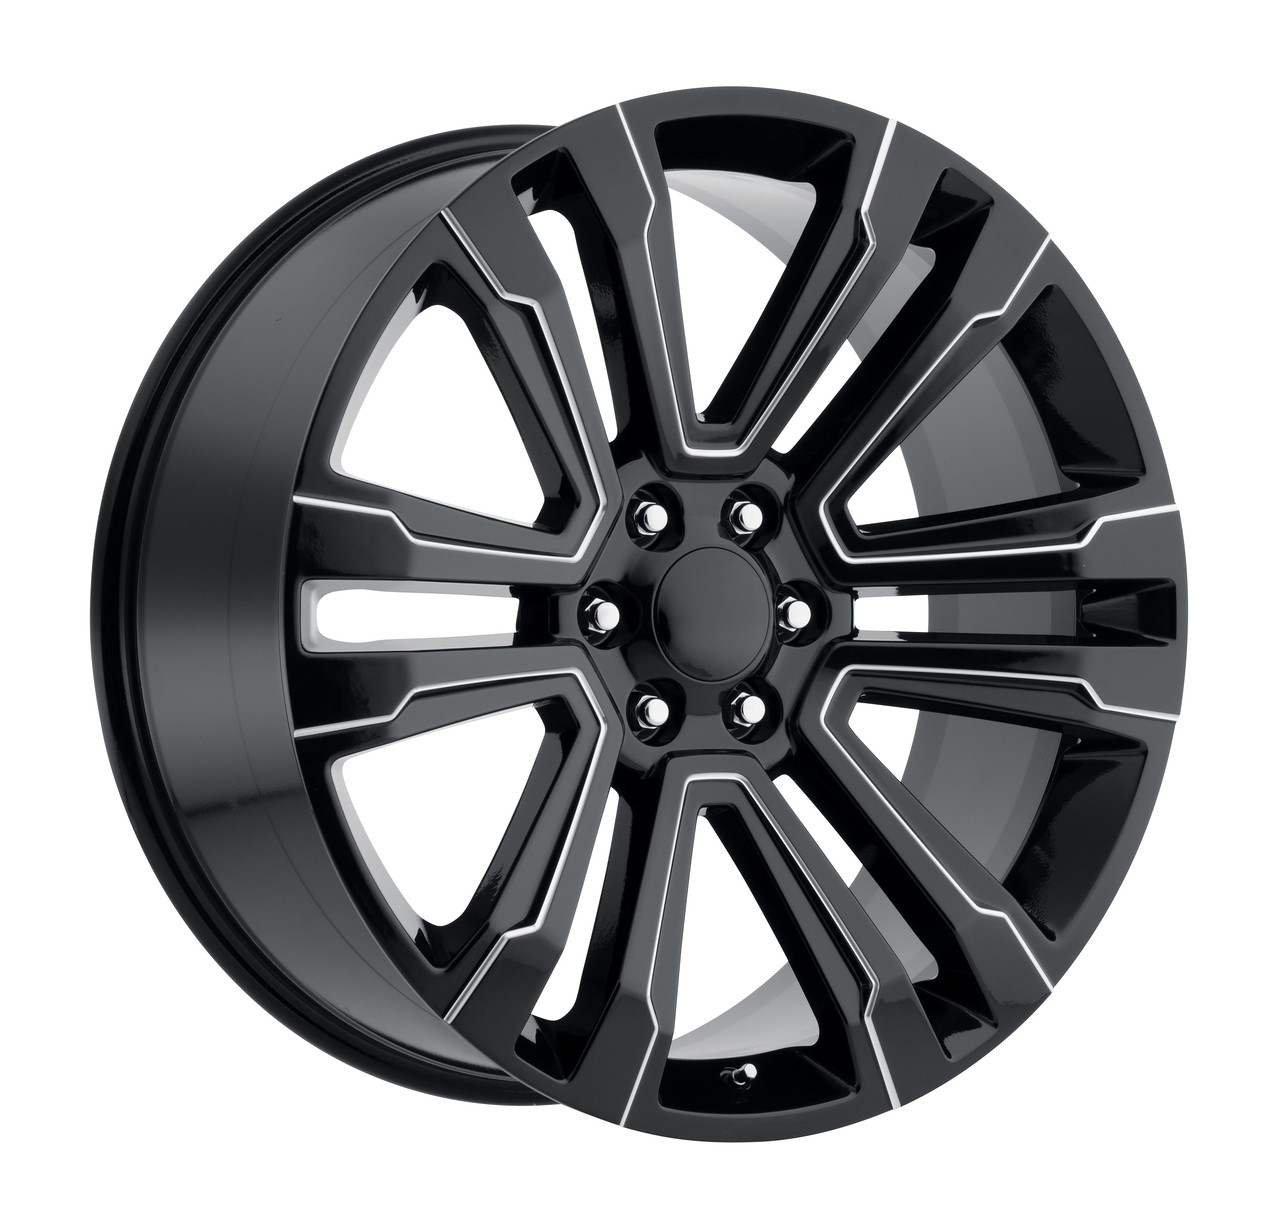 22 New 2018 Fits Gmc Denali Wheels Chevy 1500 Gloss Black With